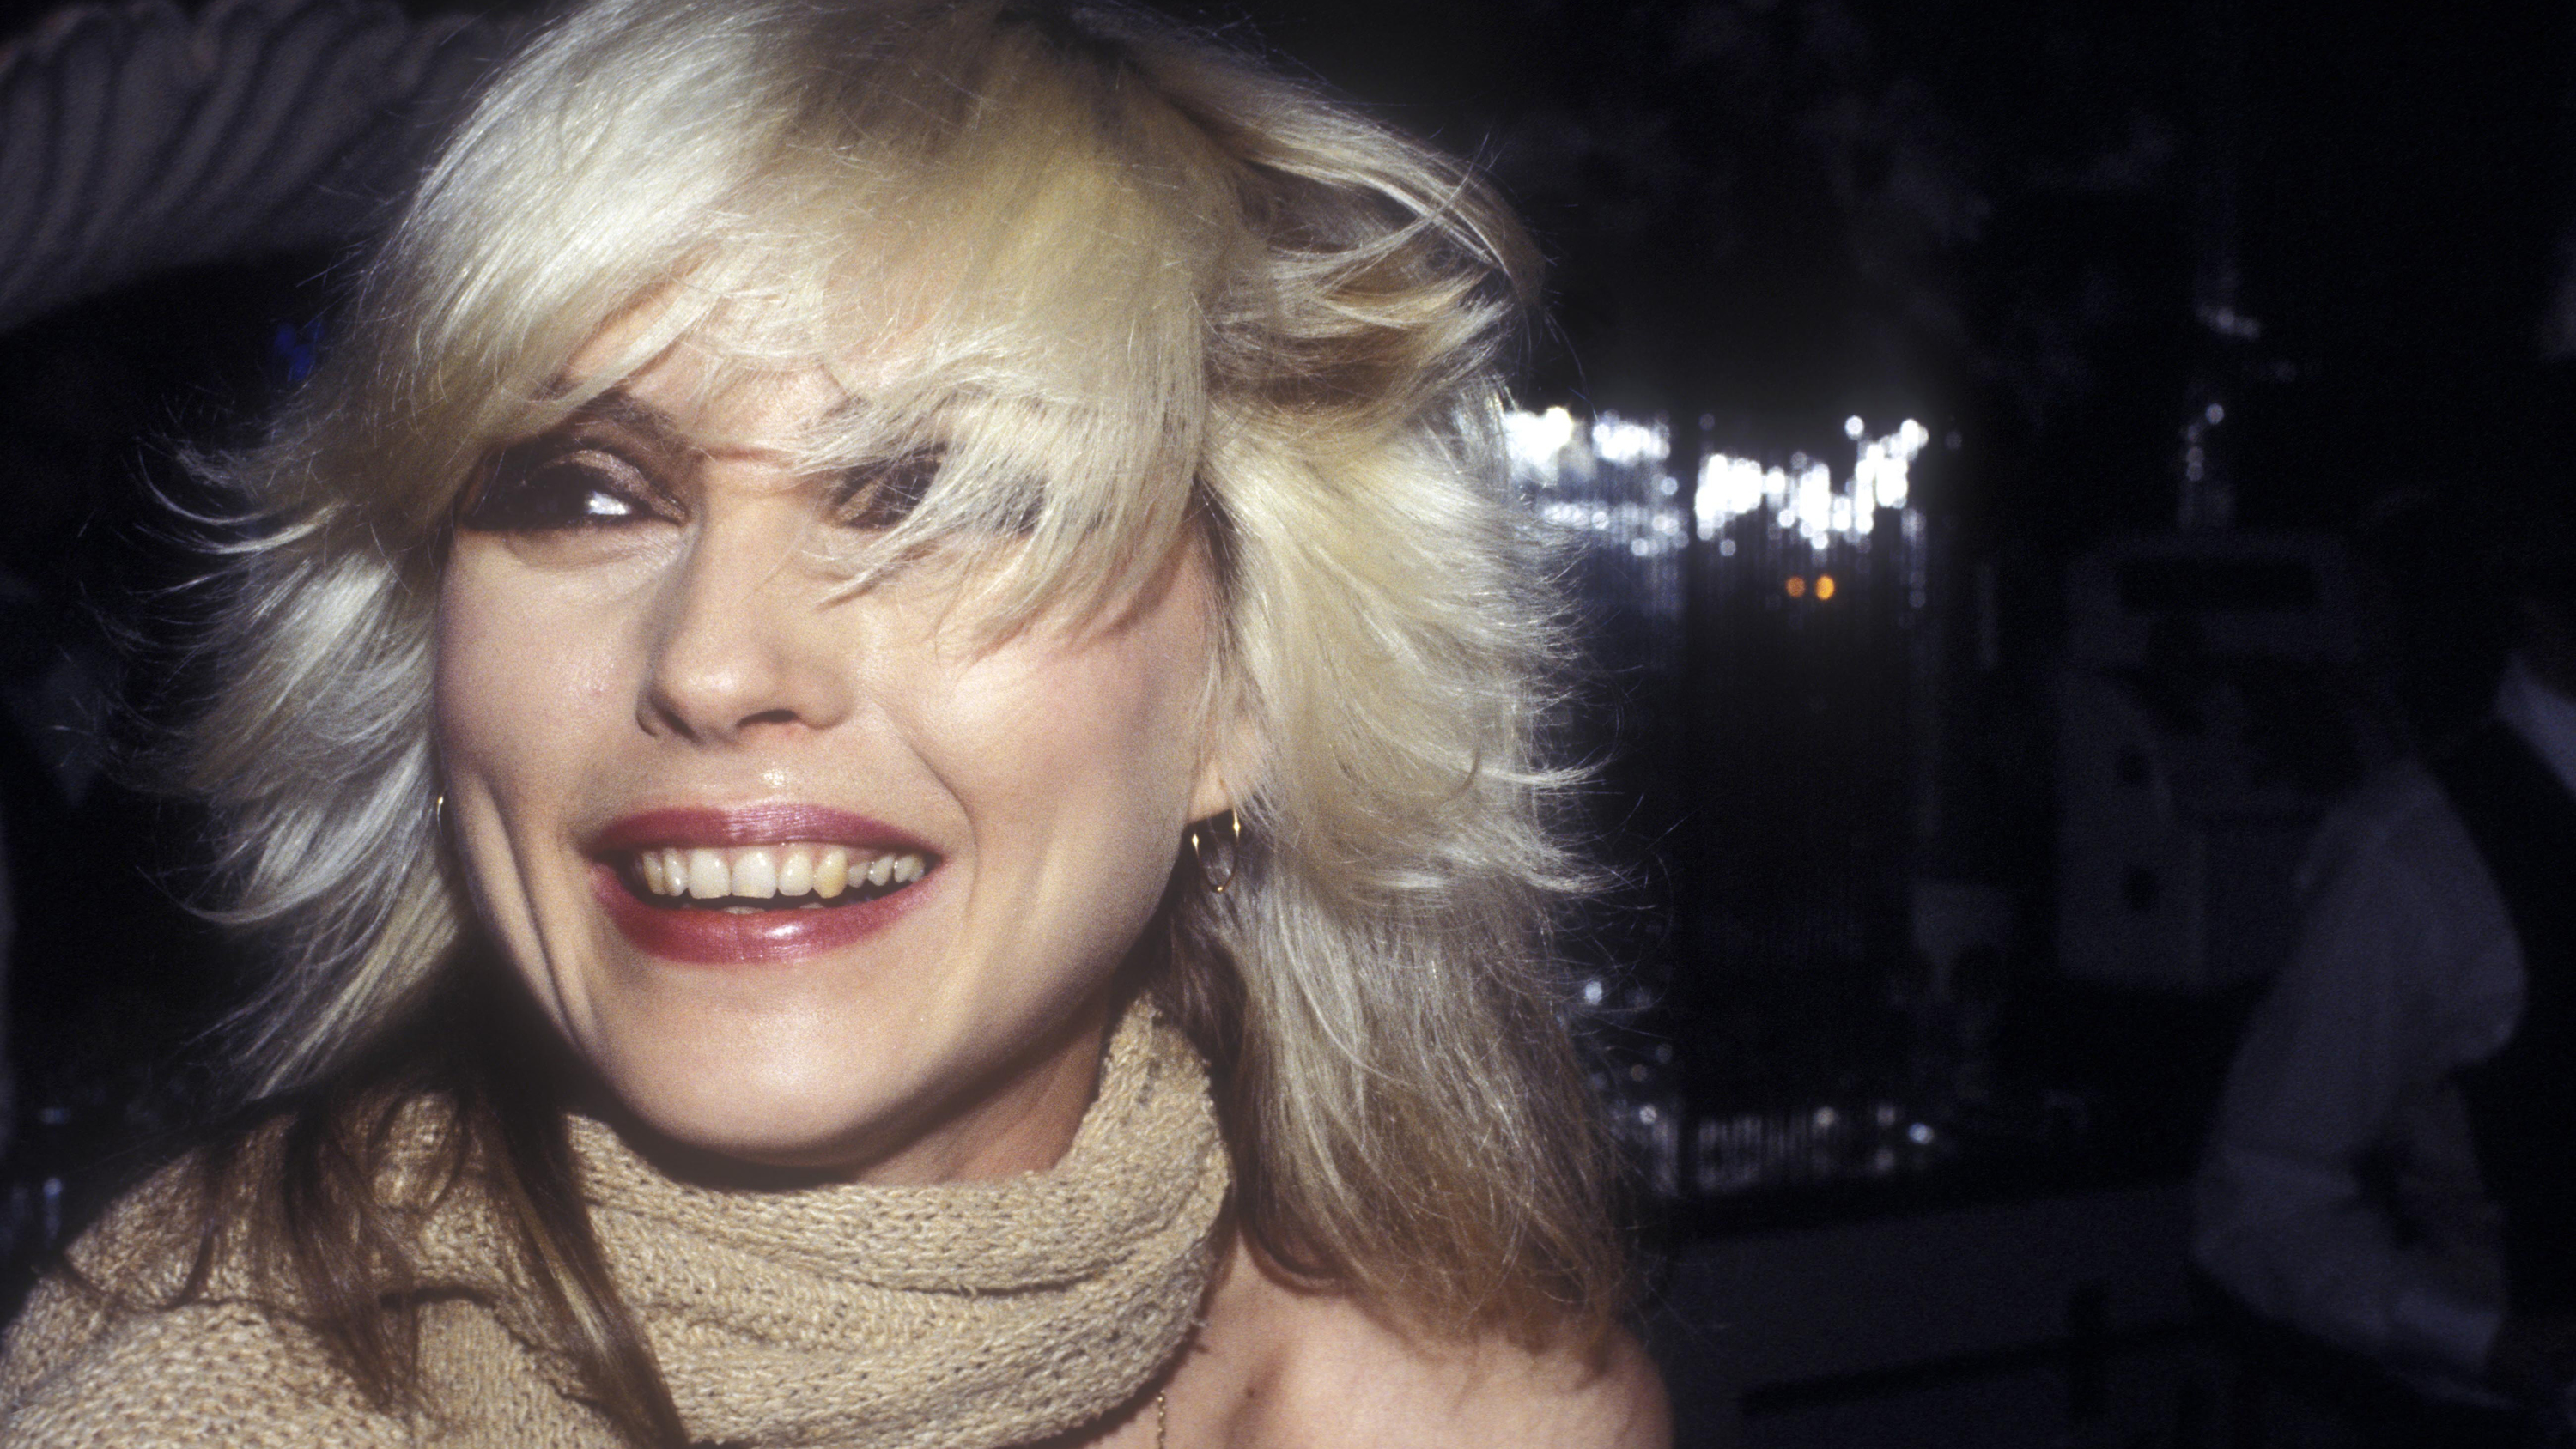 Check Out These Amazing Vintage Photos Of Debbie Harry In